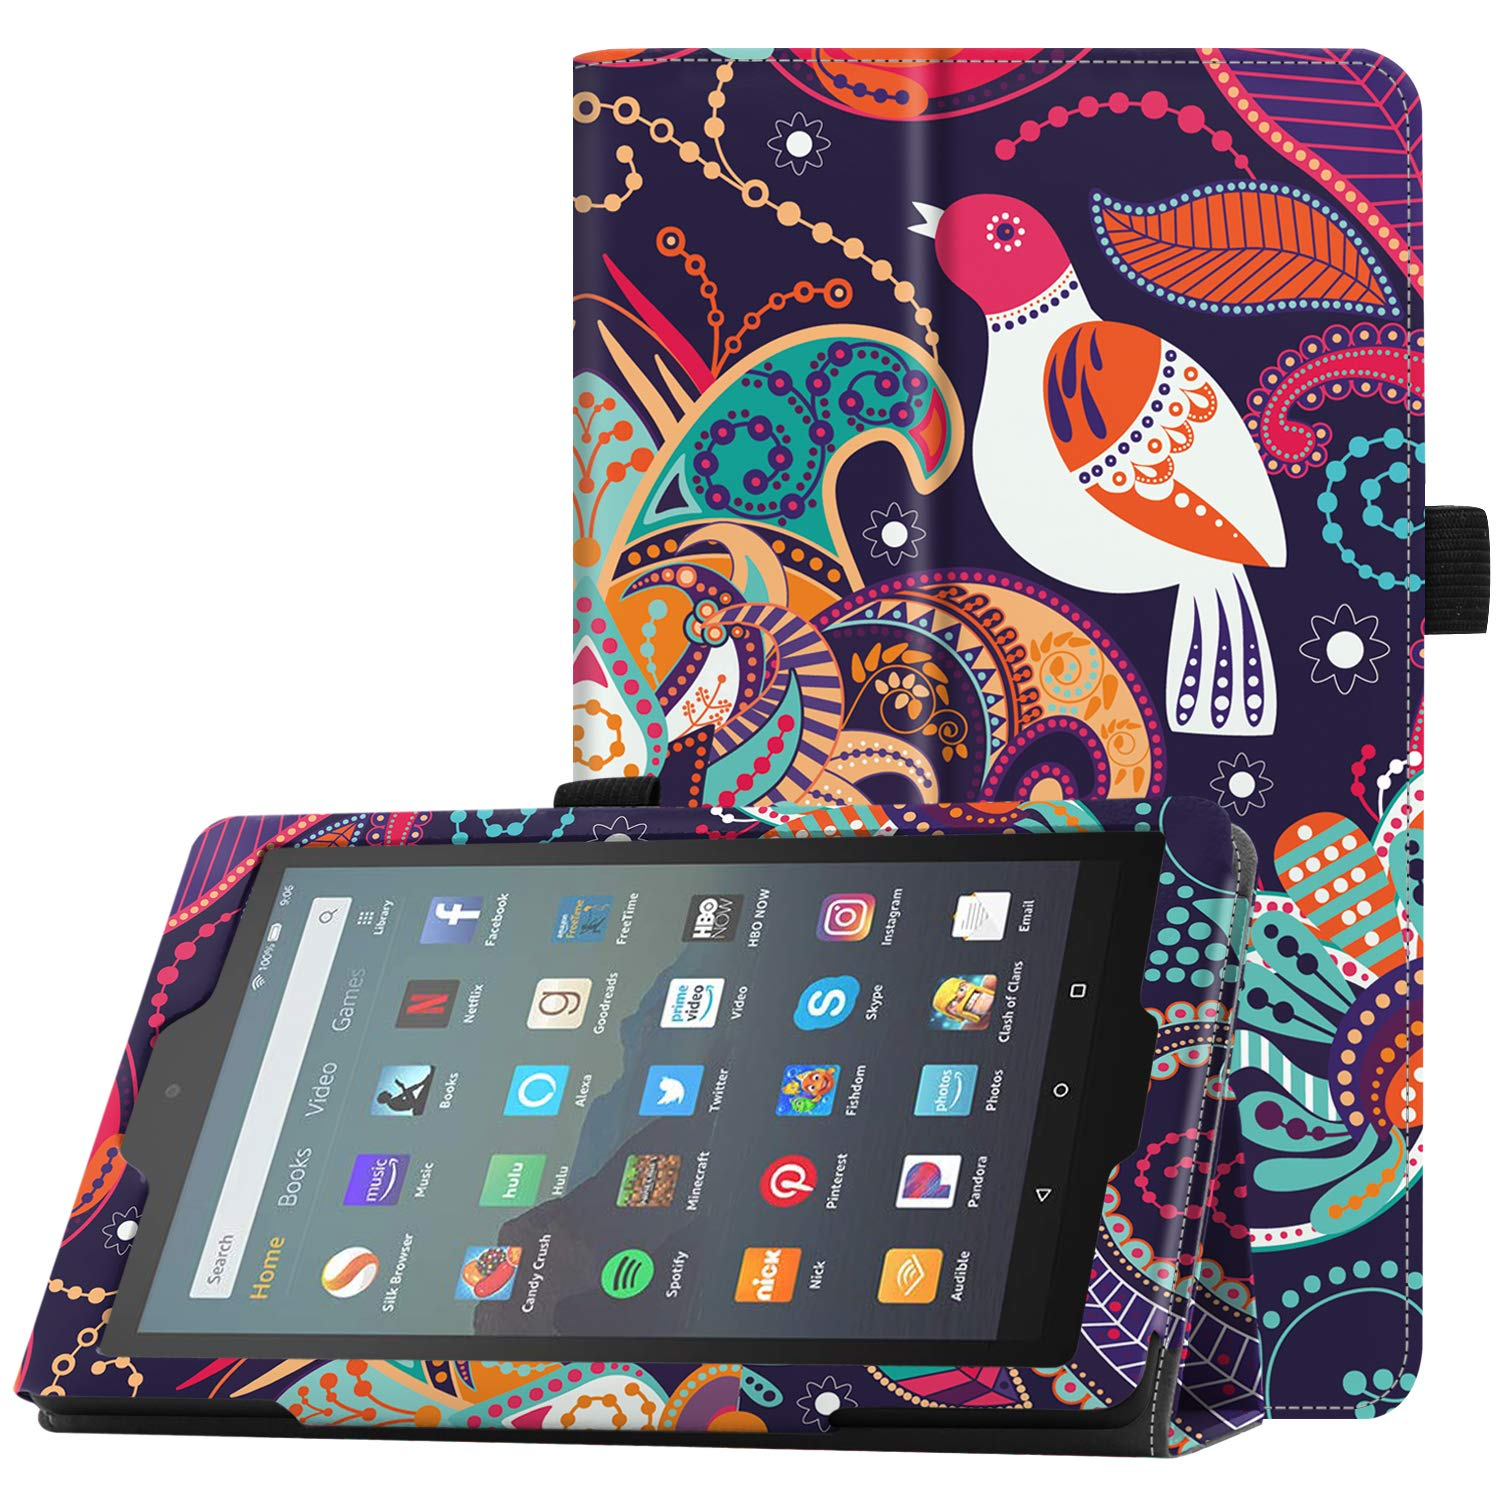 "Famavala Folio Case Cover Compatible with 7"" Amazon Kindle Fire 7 Tablet (9th Generation, 2019 Release) (TreeBird)"